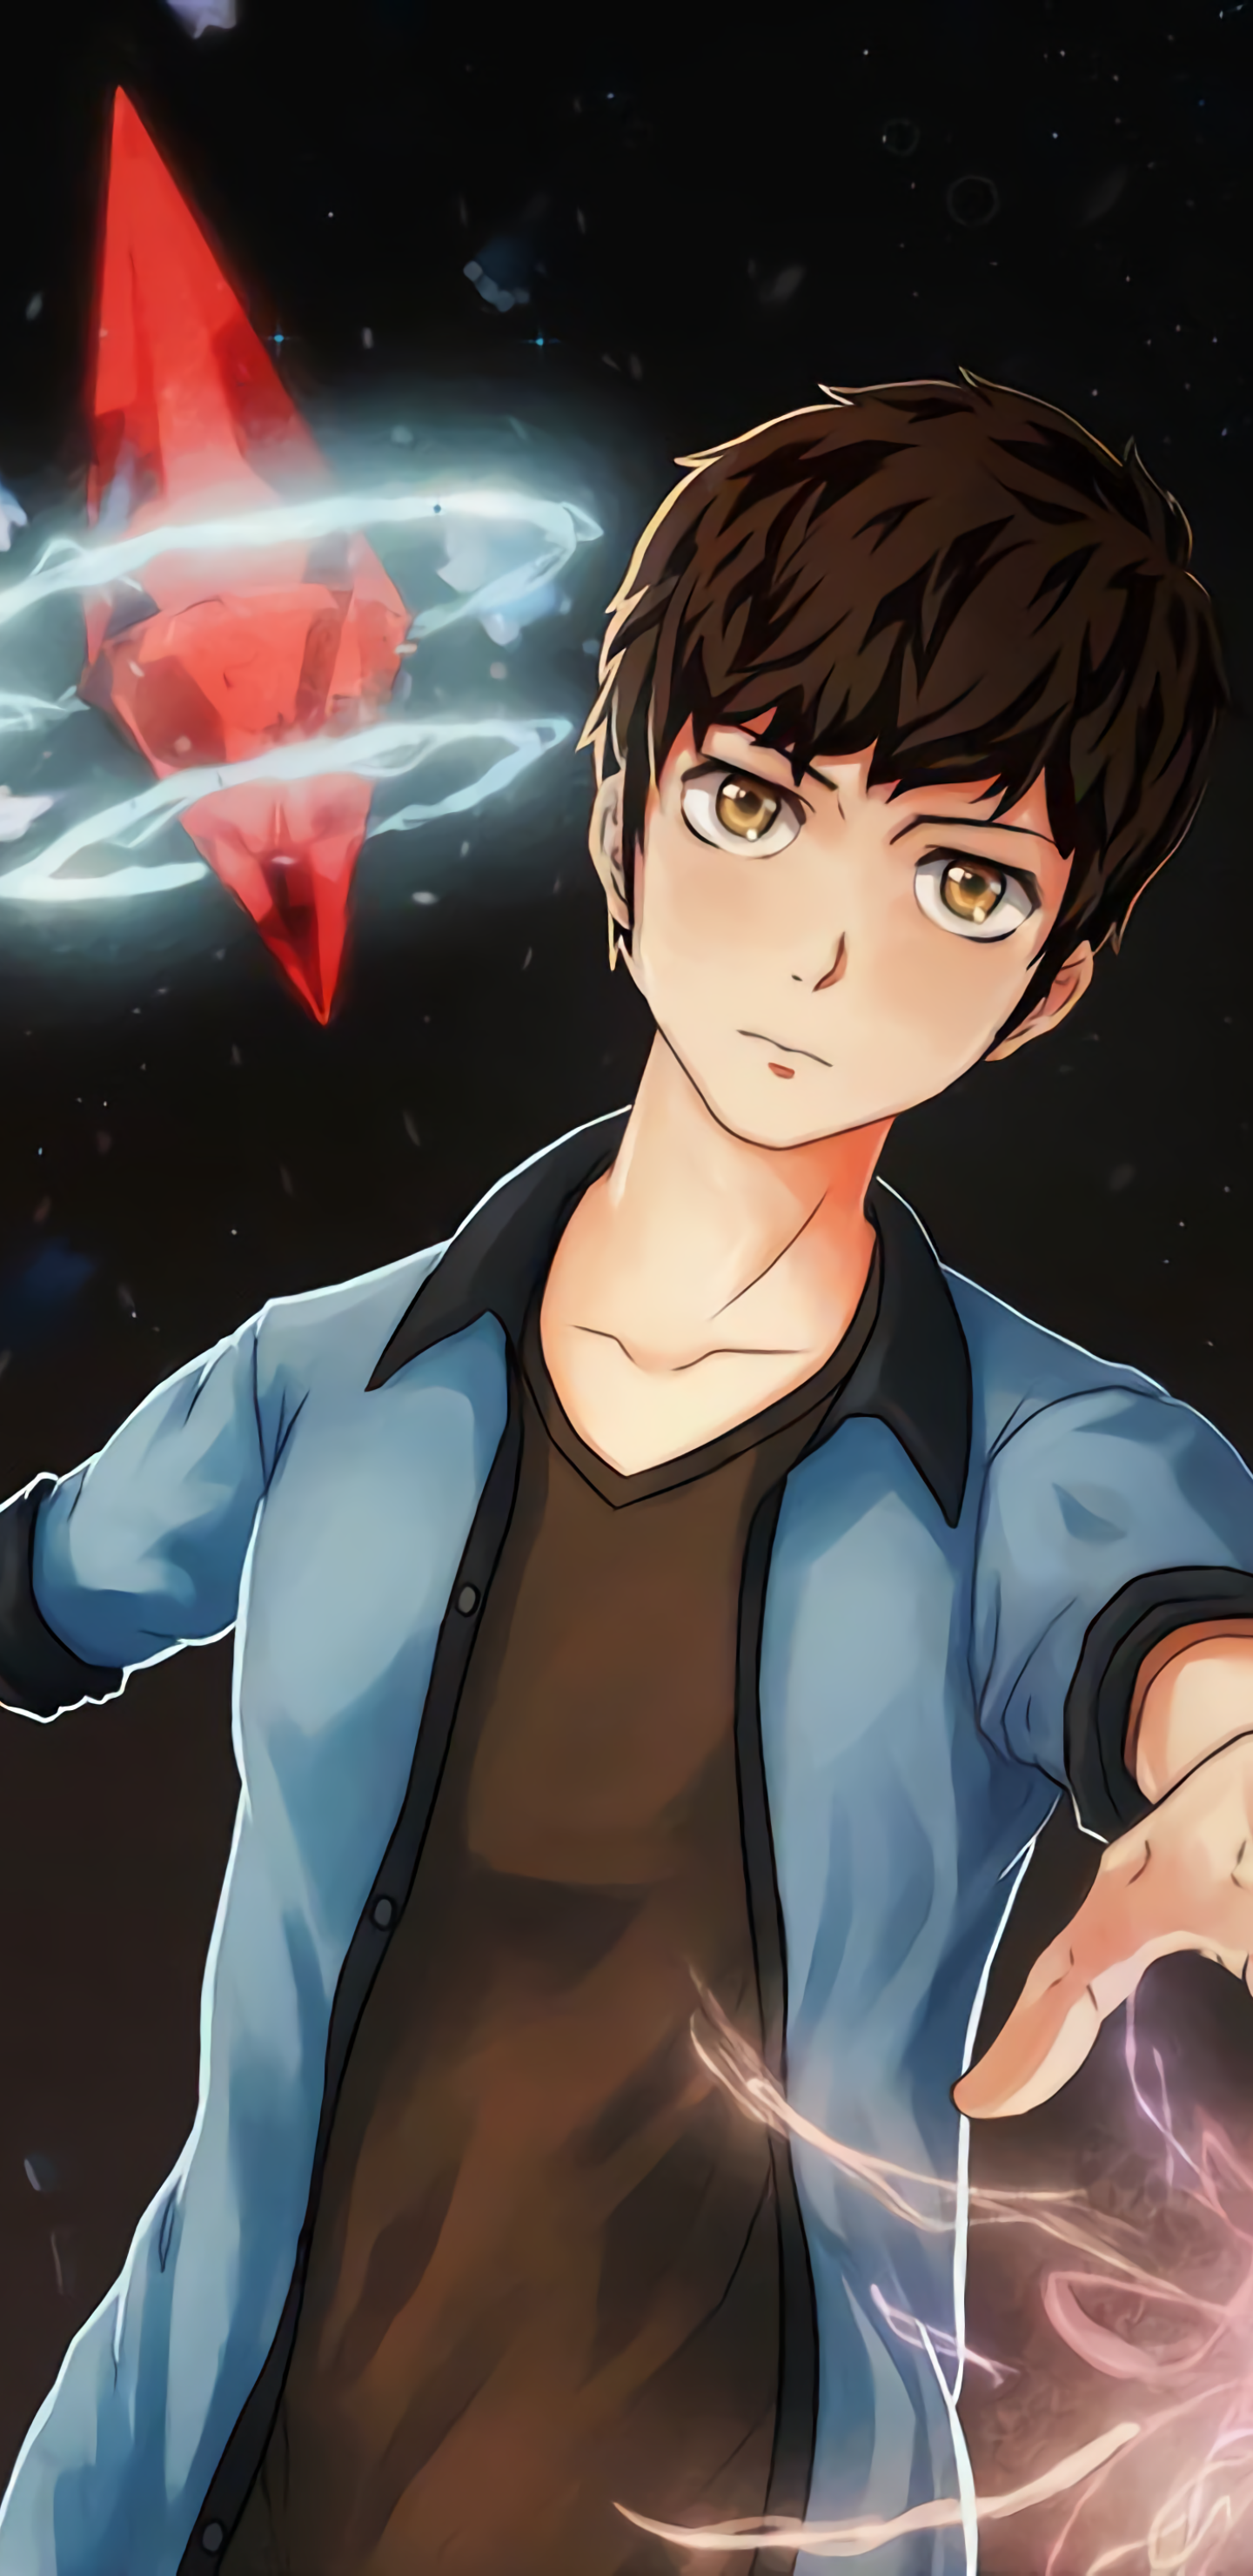 Mobile Tower Of God Wallpapers - Wallpaper Cave